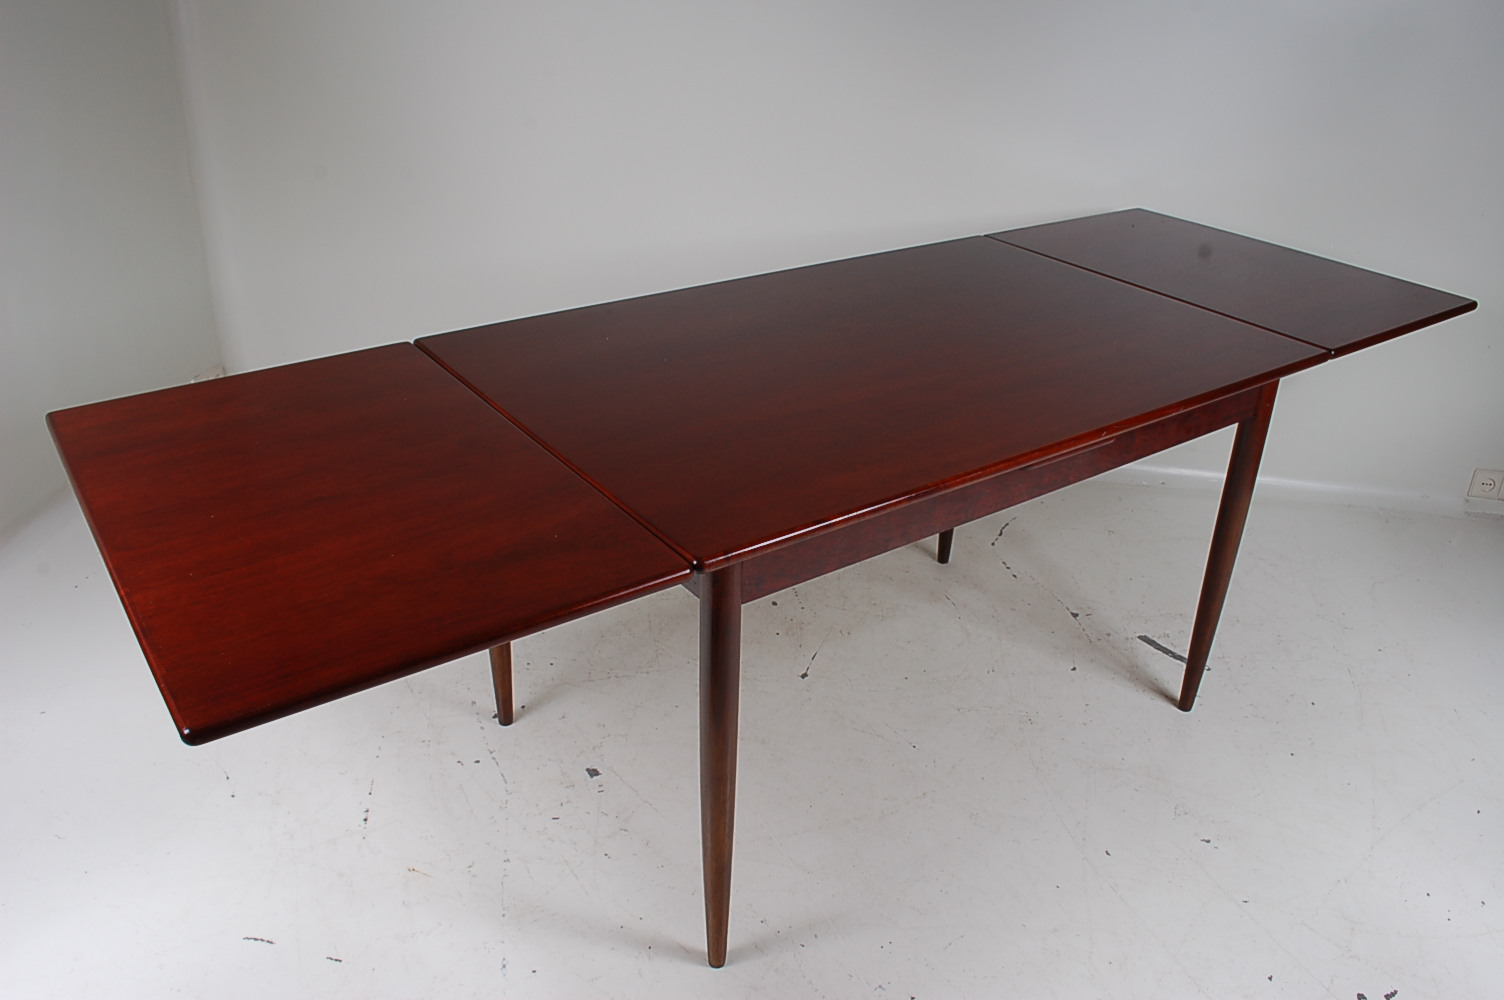 1960s Scandinavian style dining table - De Vreugde Design